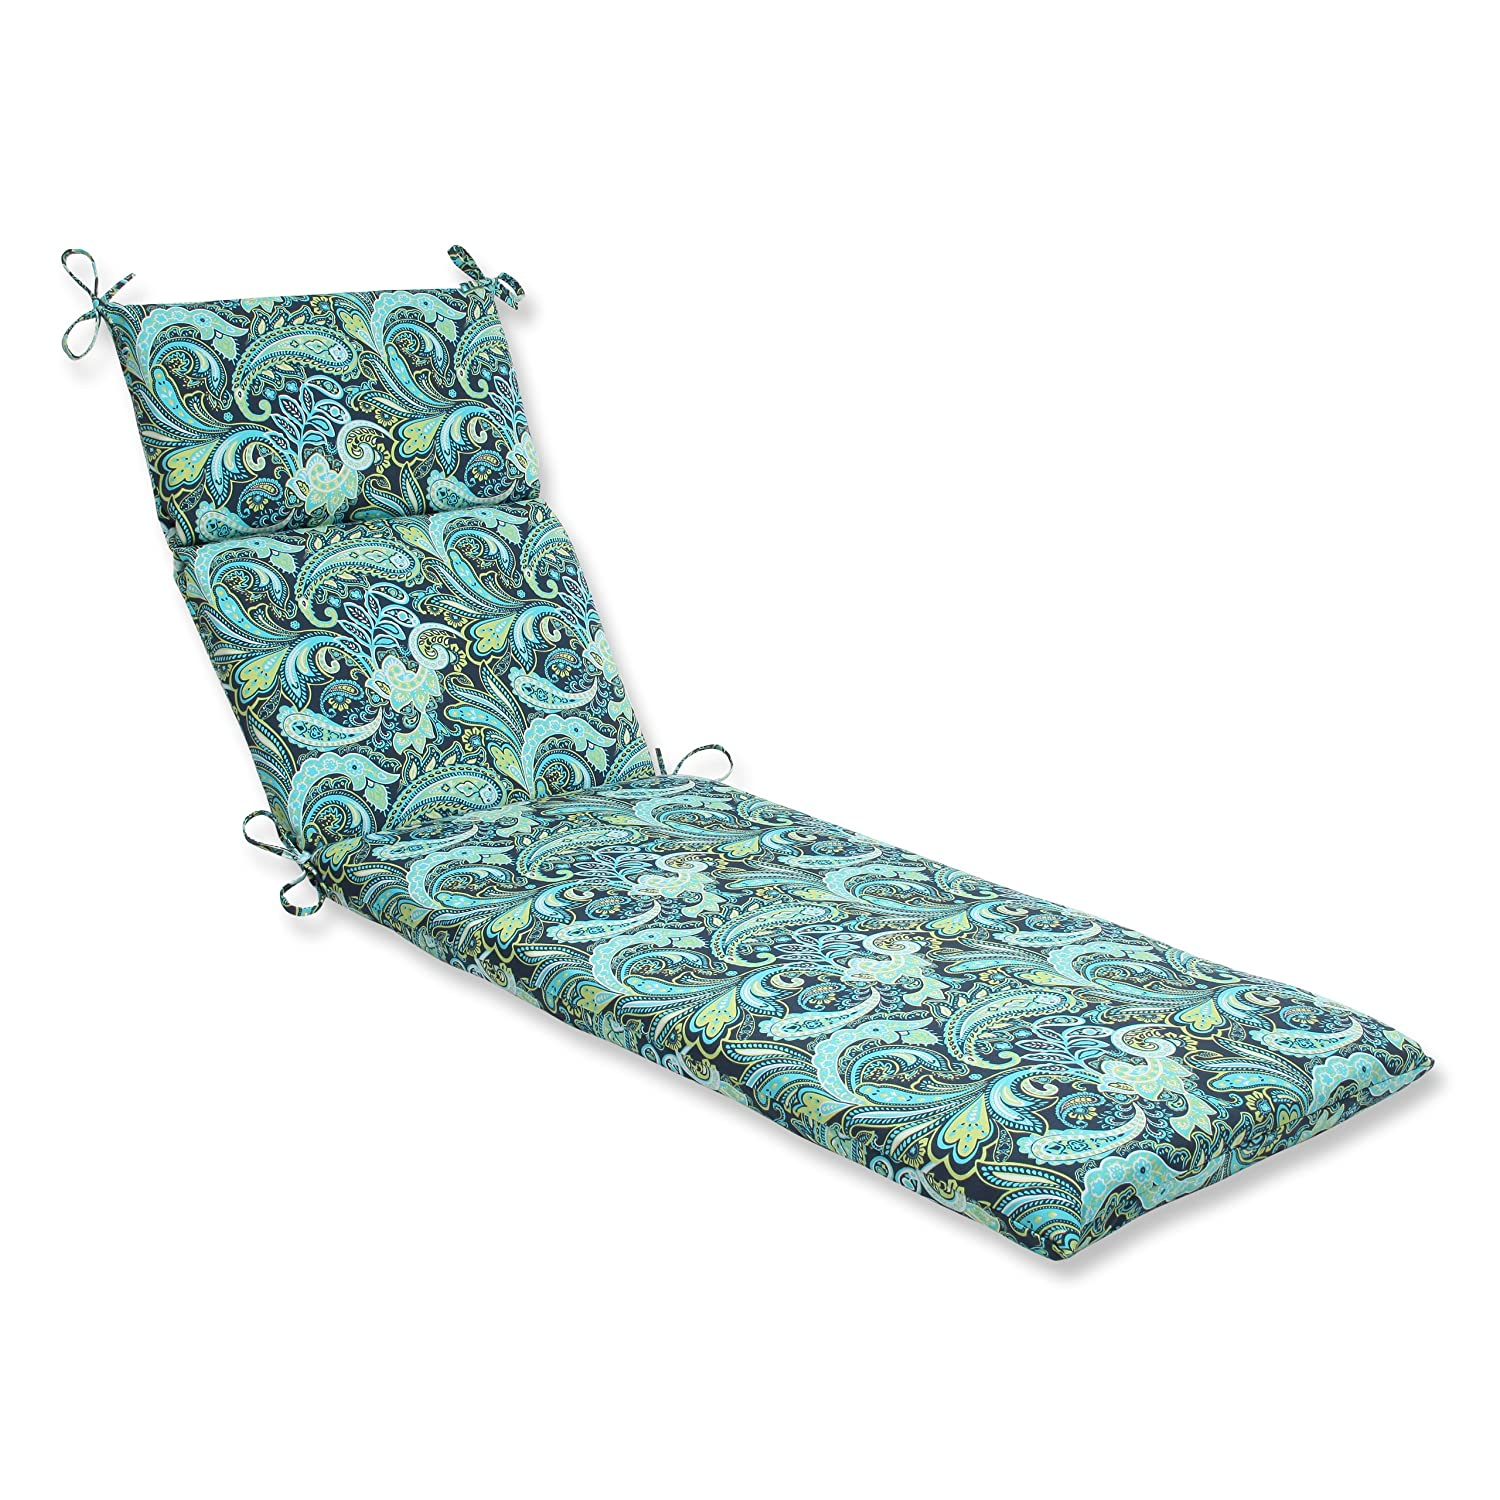 Pillow Perfect Outdoor Pretty Paisley Chaise Lounge Cushion, Navy Inc. 543772